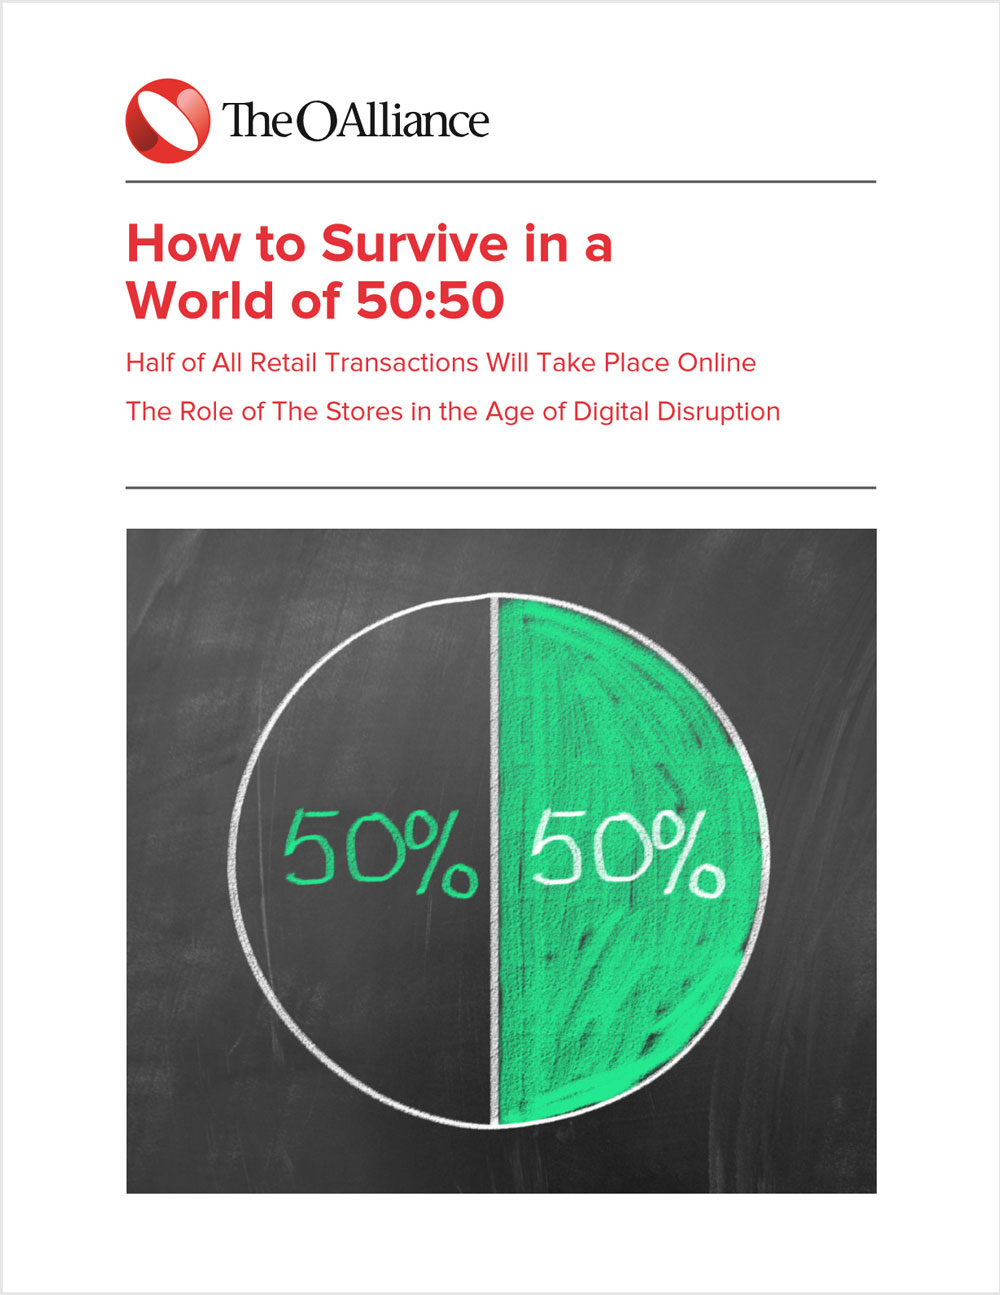 how to survive in a world of 50:50 - October 6, 2015